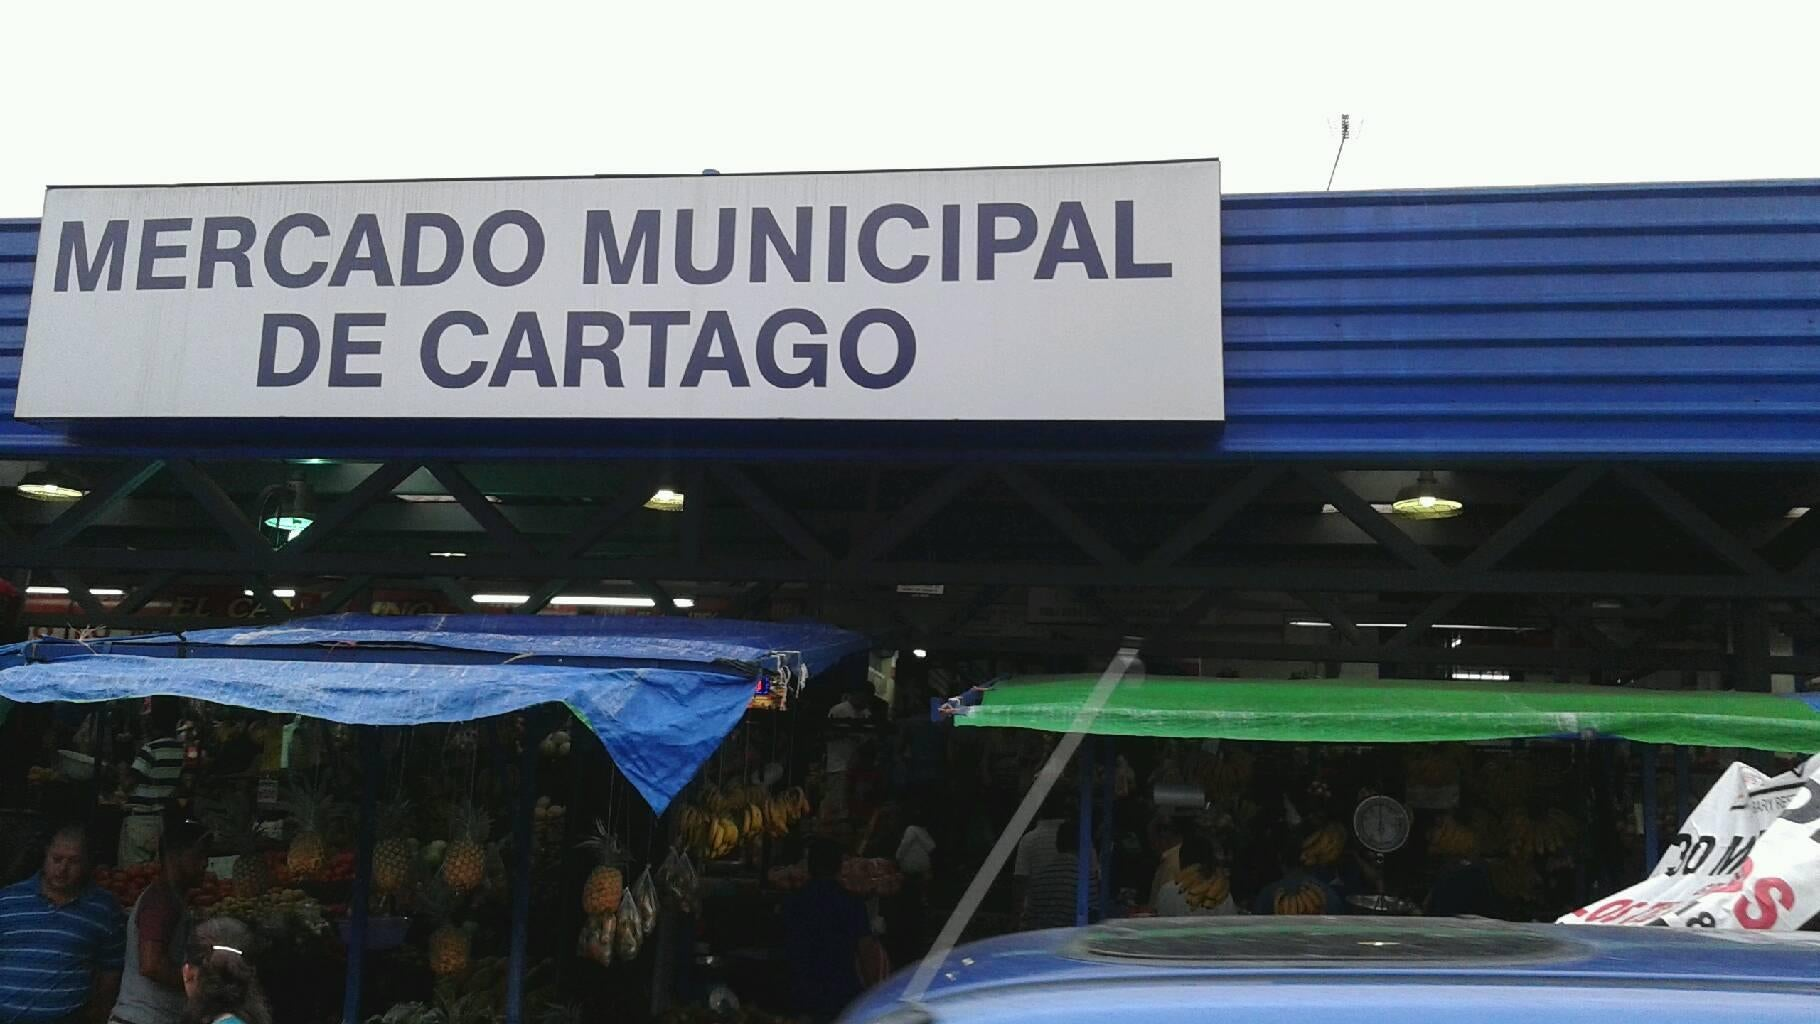 Mercado Central de Cartago